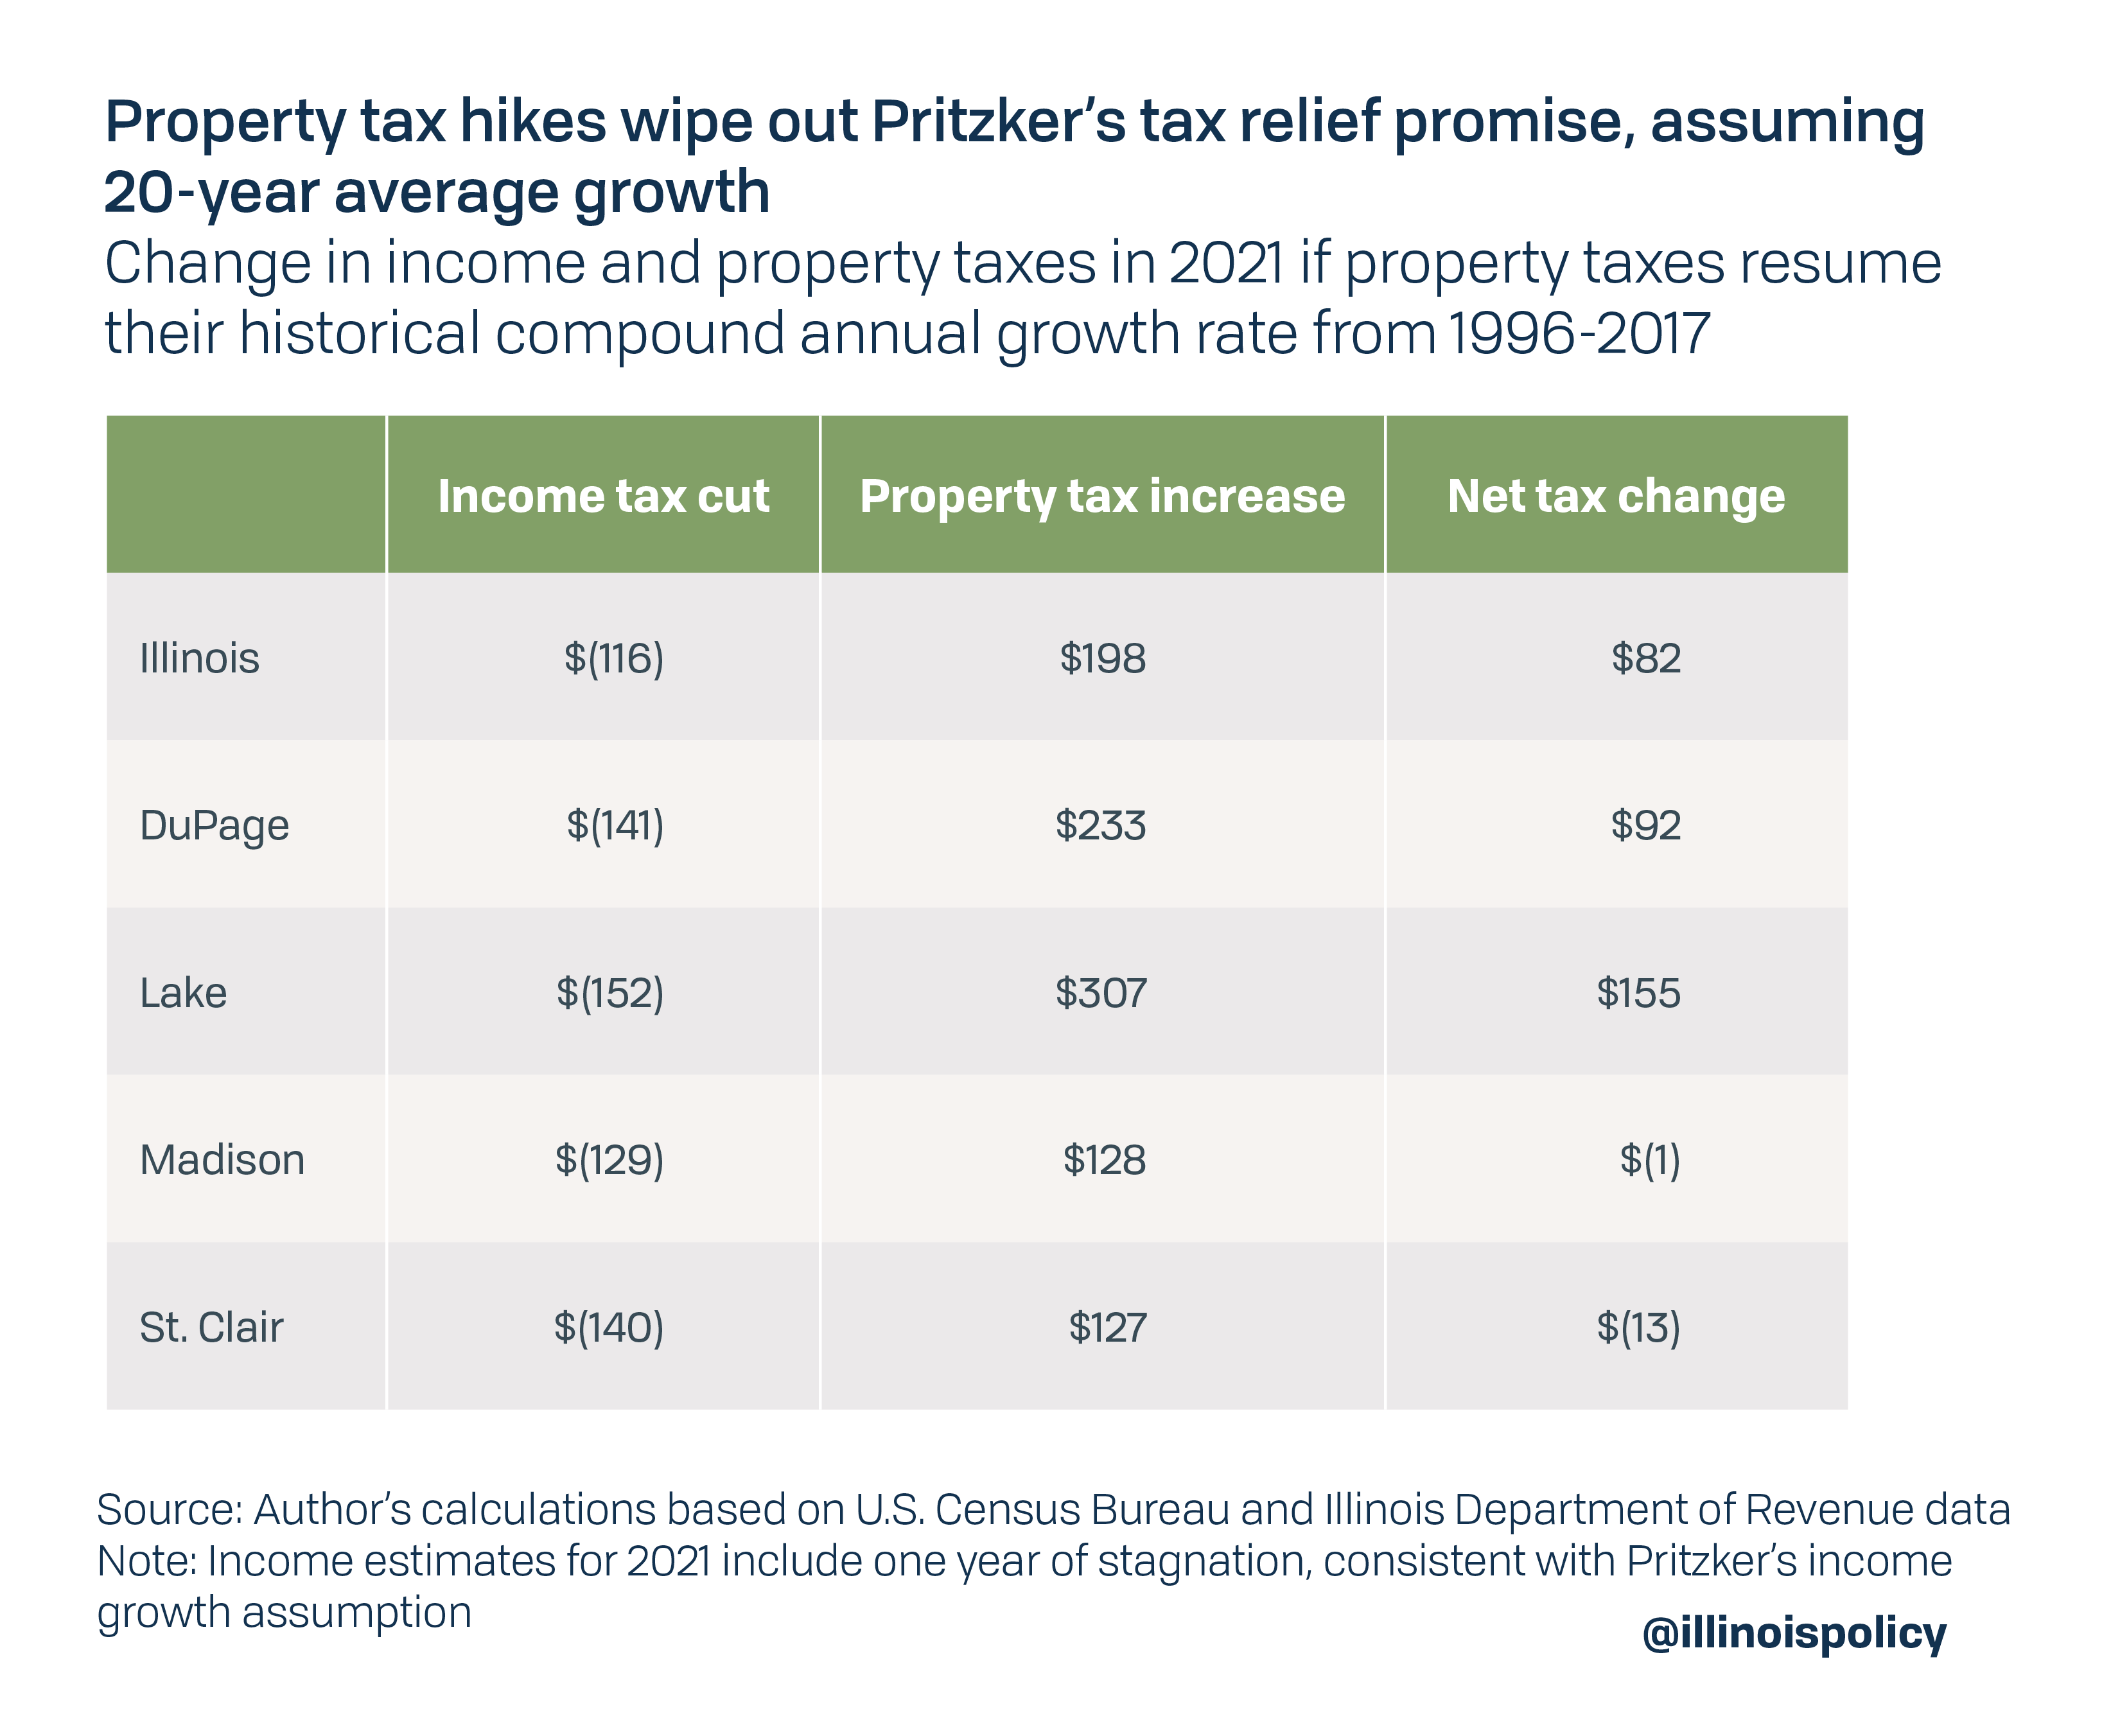 Property tax hikes wipe out Pritzker's tax relief promise, assuming 20-year average growth